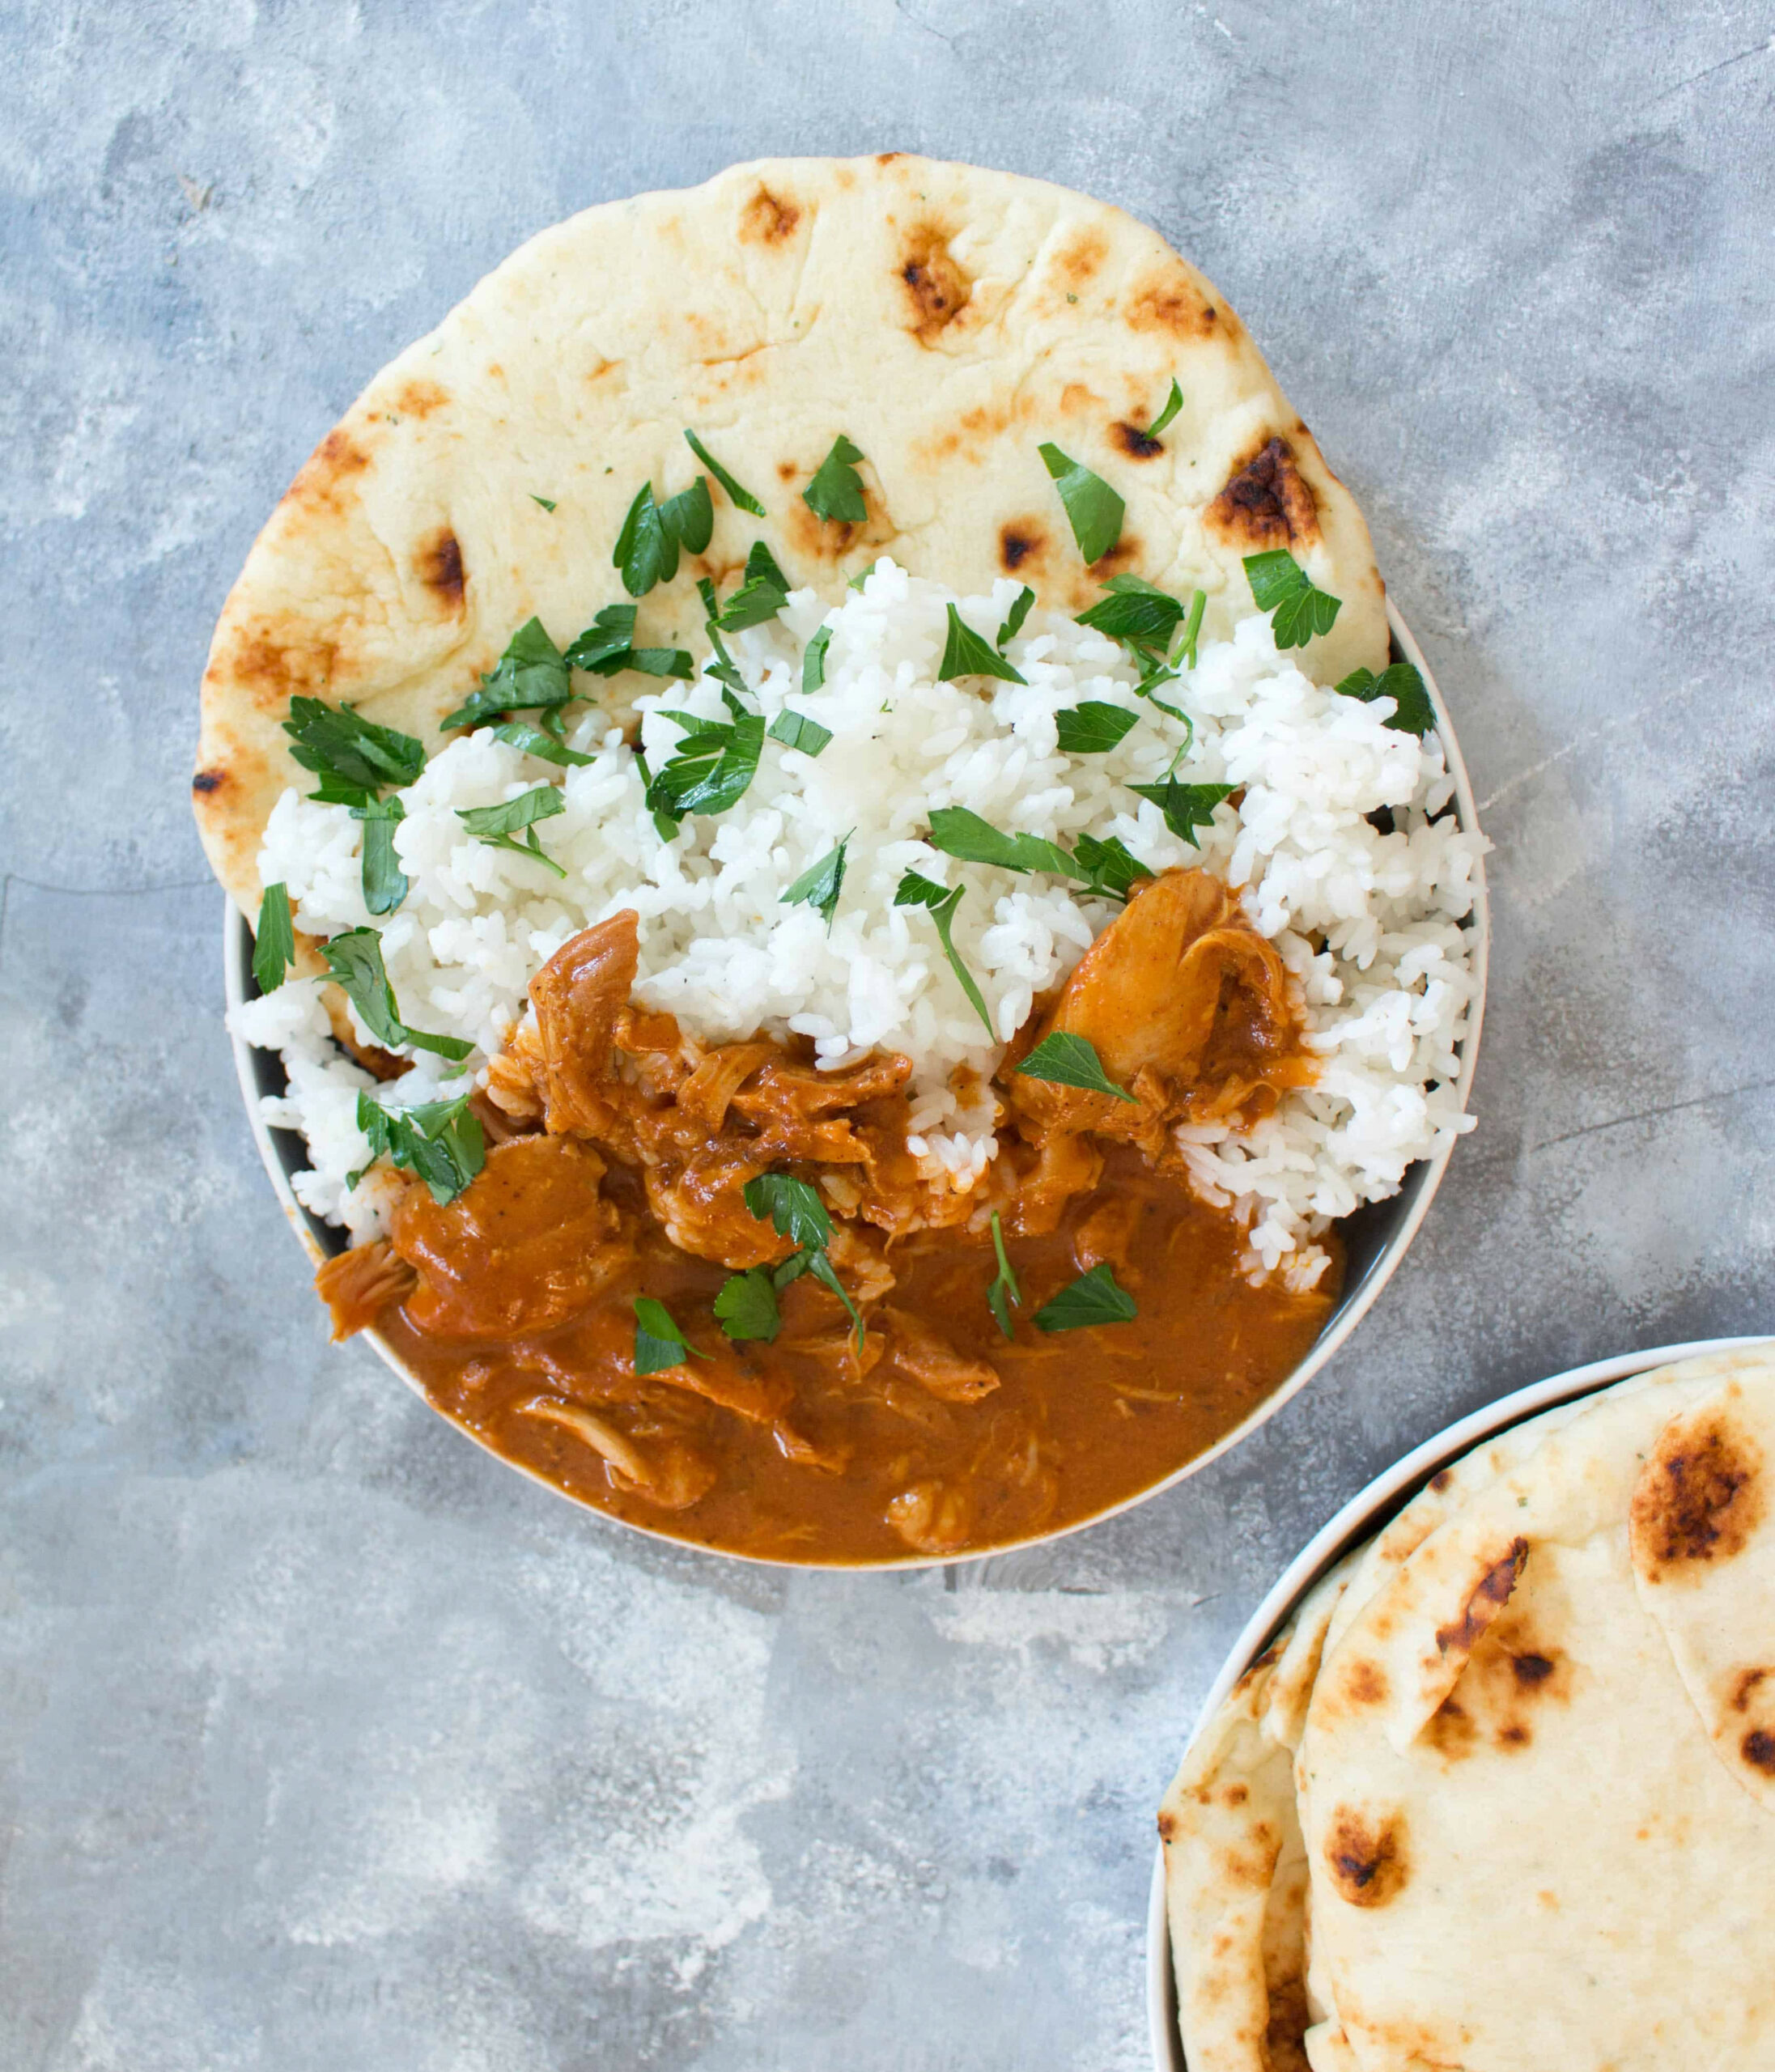 Healthy Instant Pot Butter Chicken - Carmy - Run Eat Travel - Healthy Instant Pot Recipes Chicken